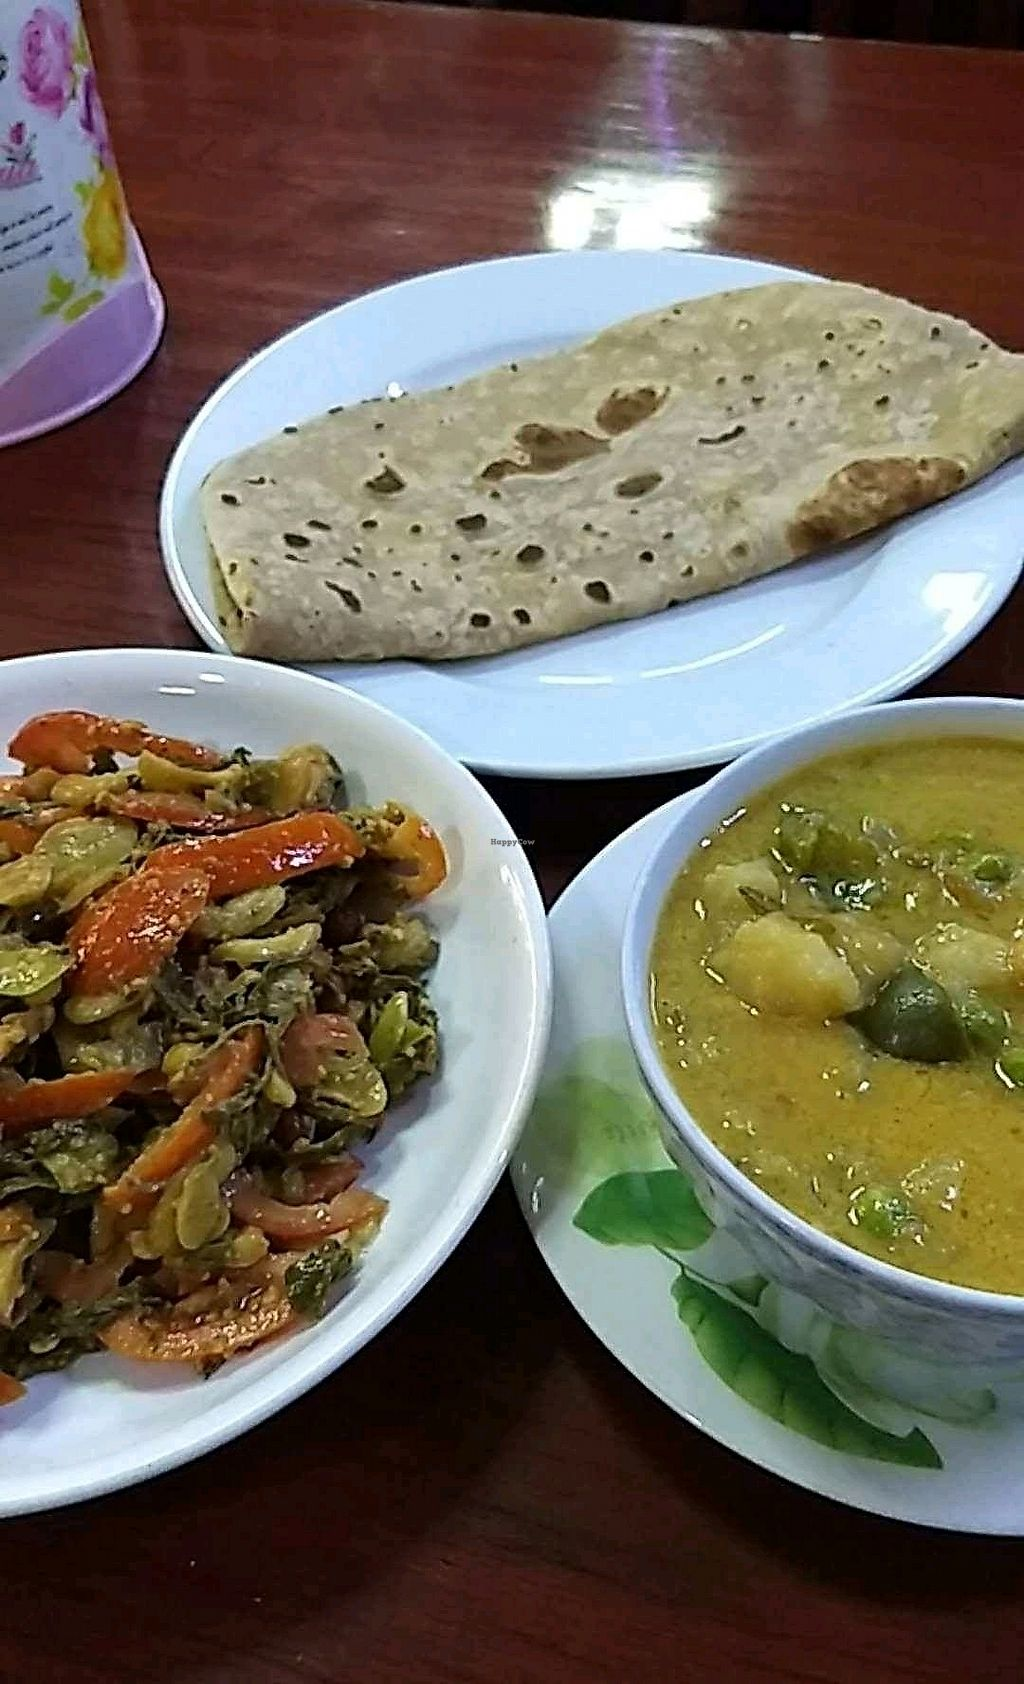 """Photo of Marie Min  by <a href=""""/members/profile/mugcake"""">mugcake</a> <br/>tea leaf salad (3000k - recommend!), potato curry (4000k) and chappati (500k) <br/> October 13, 2017  - <a href='/contact/abuse/image/11956/314854'>Report</a>"""